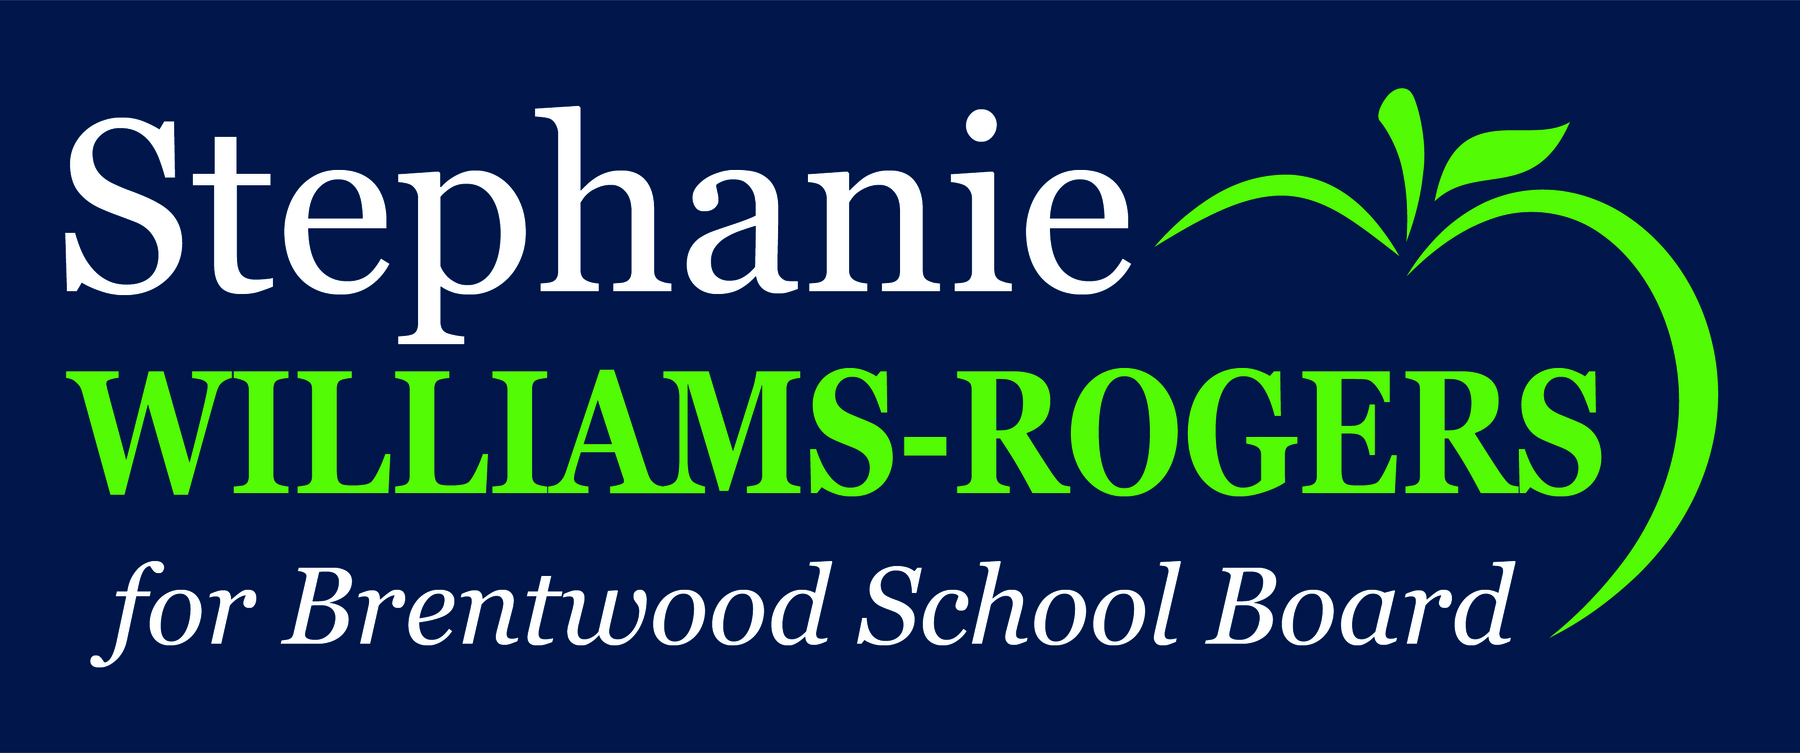 Stephanie Williams-Rogers for Brentwood School Board 2020: Stephanie for School Board